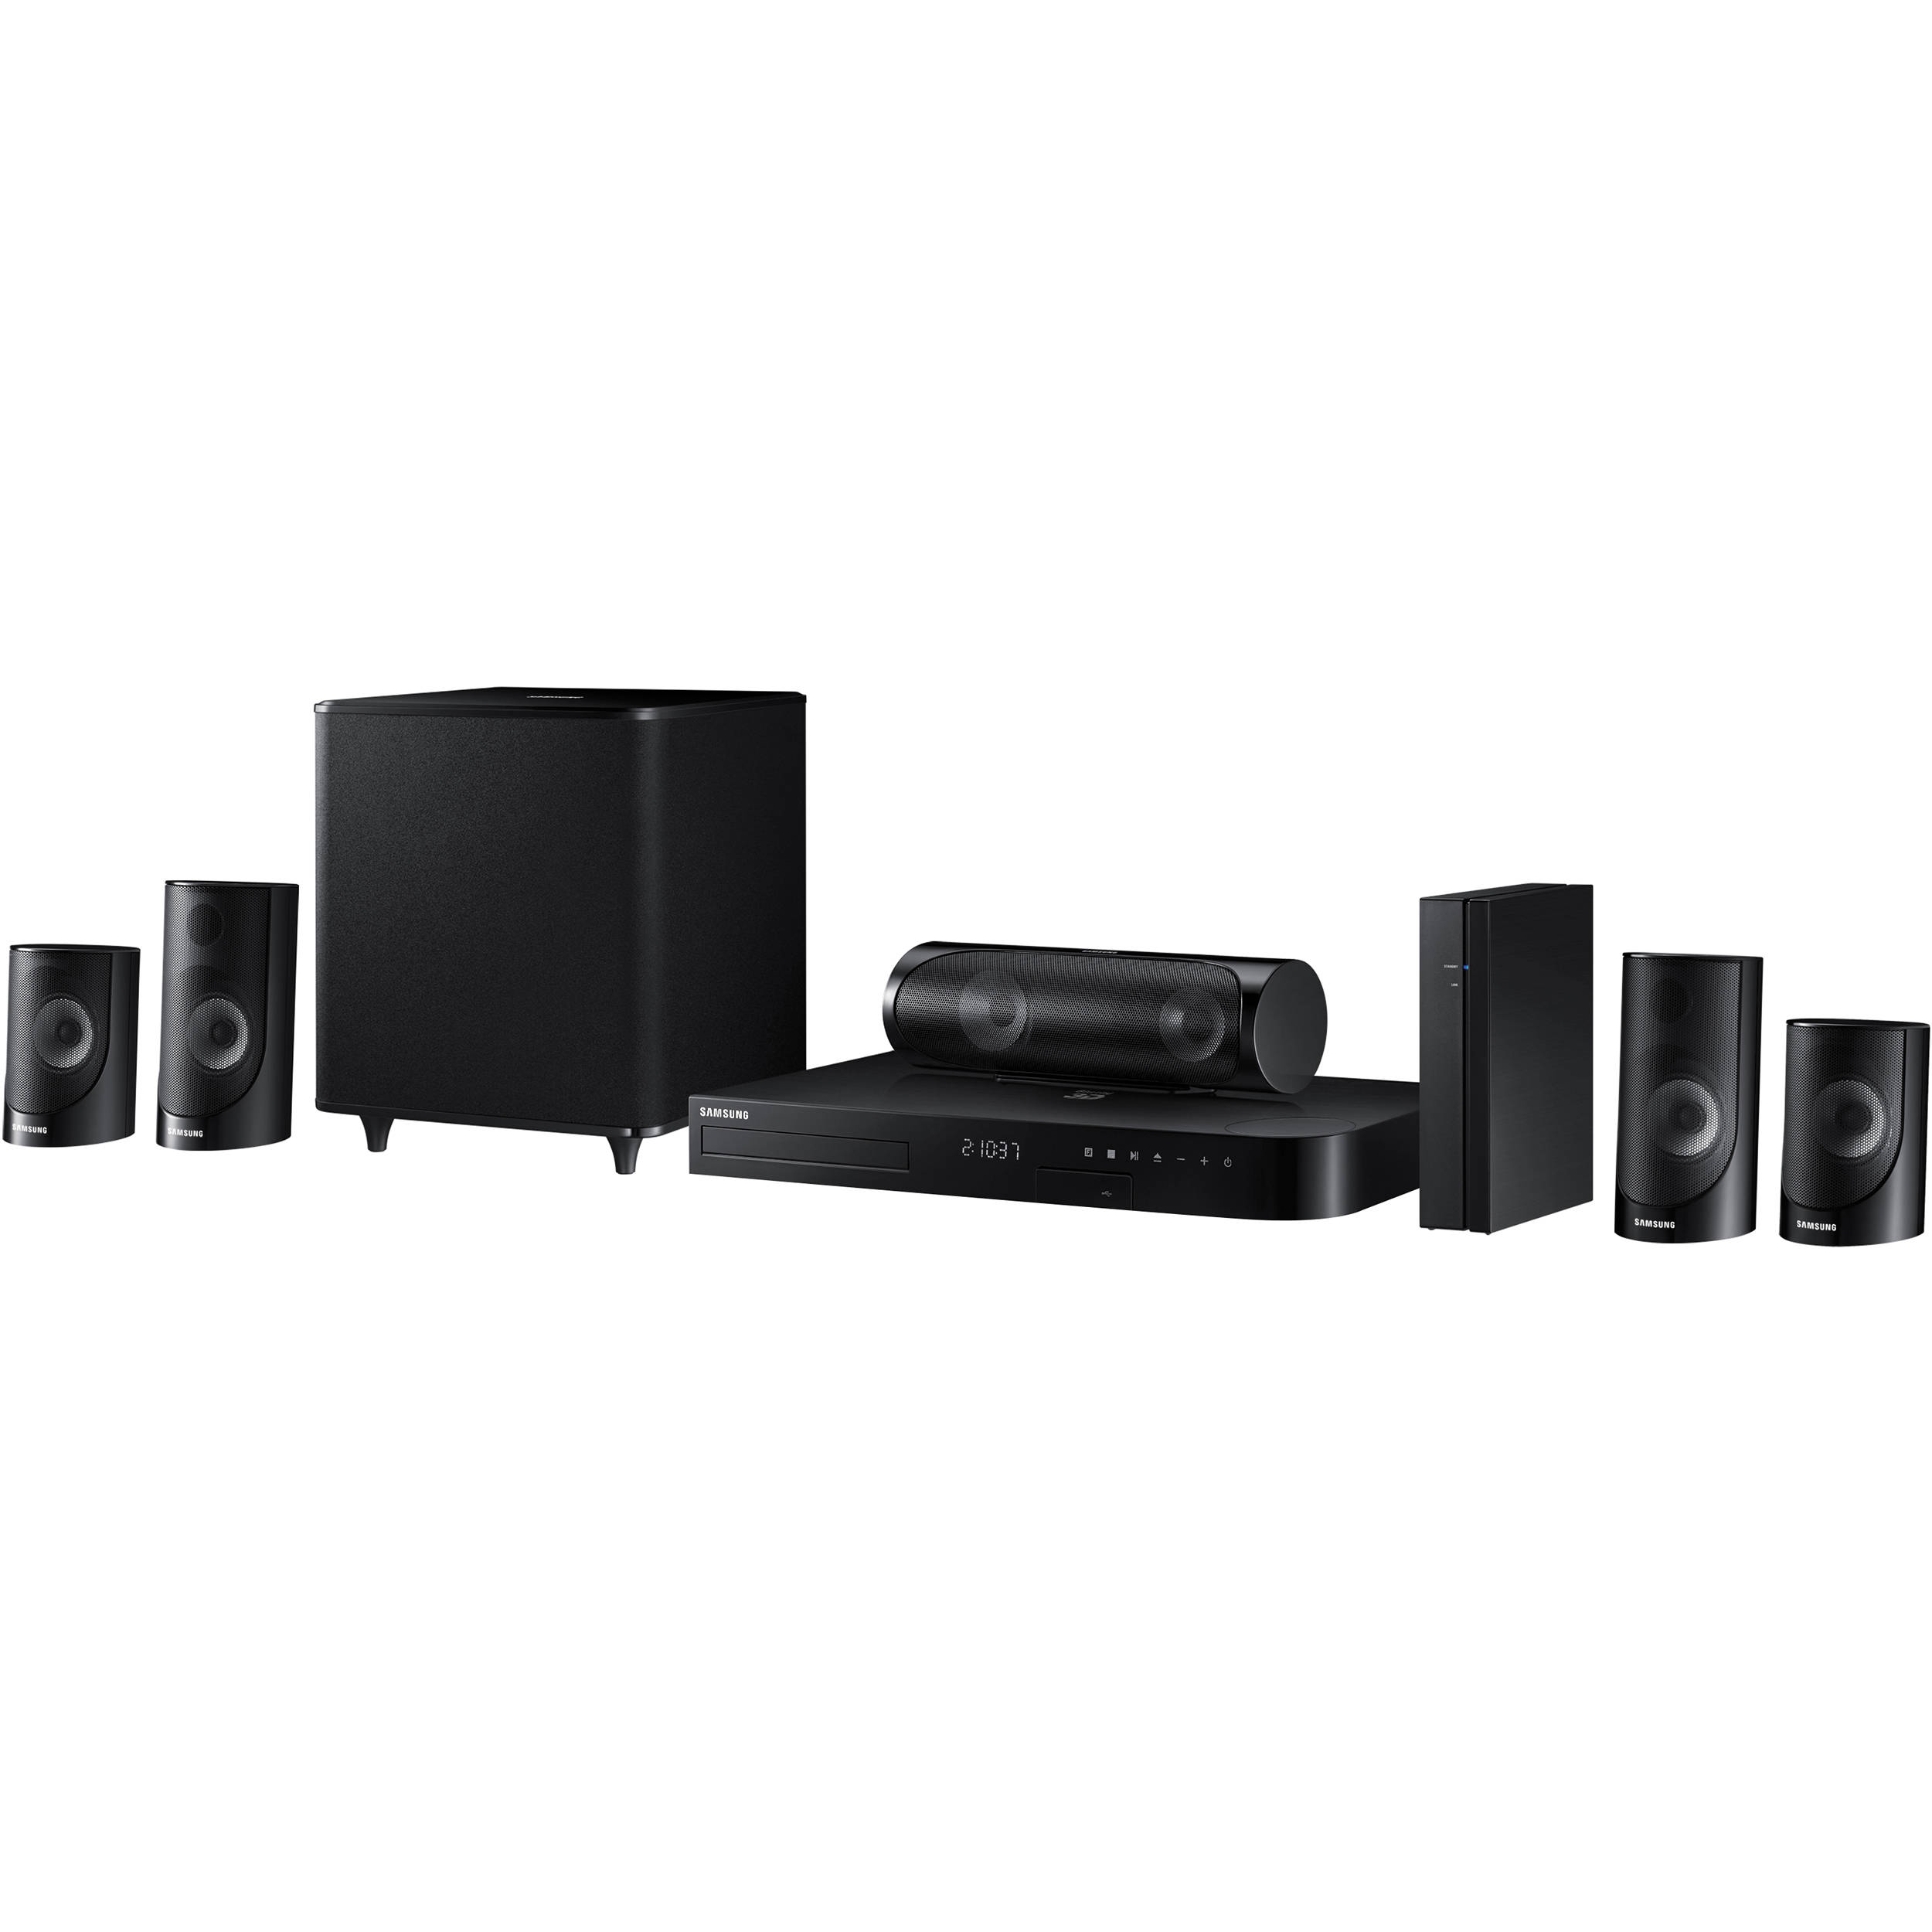 Samsung ht j5500w 51 channel smart blu ray home ht j5500wza samsung ht j5500w 51 channel smart blu ray home theater system sciox Choice Image